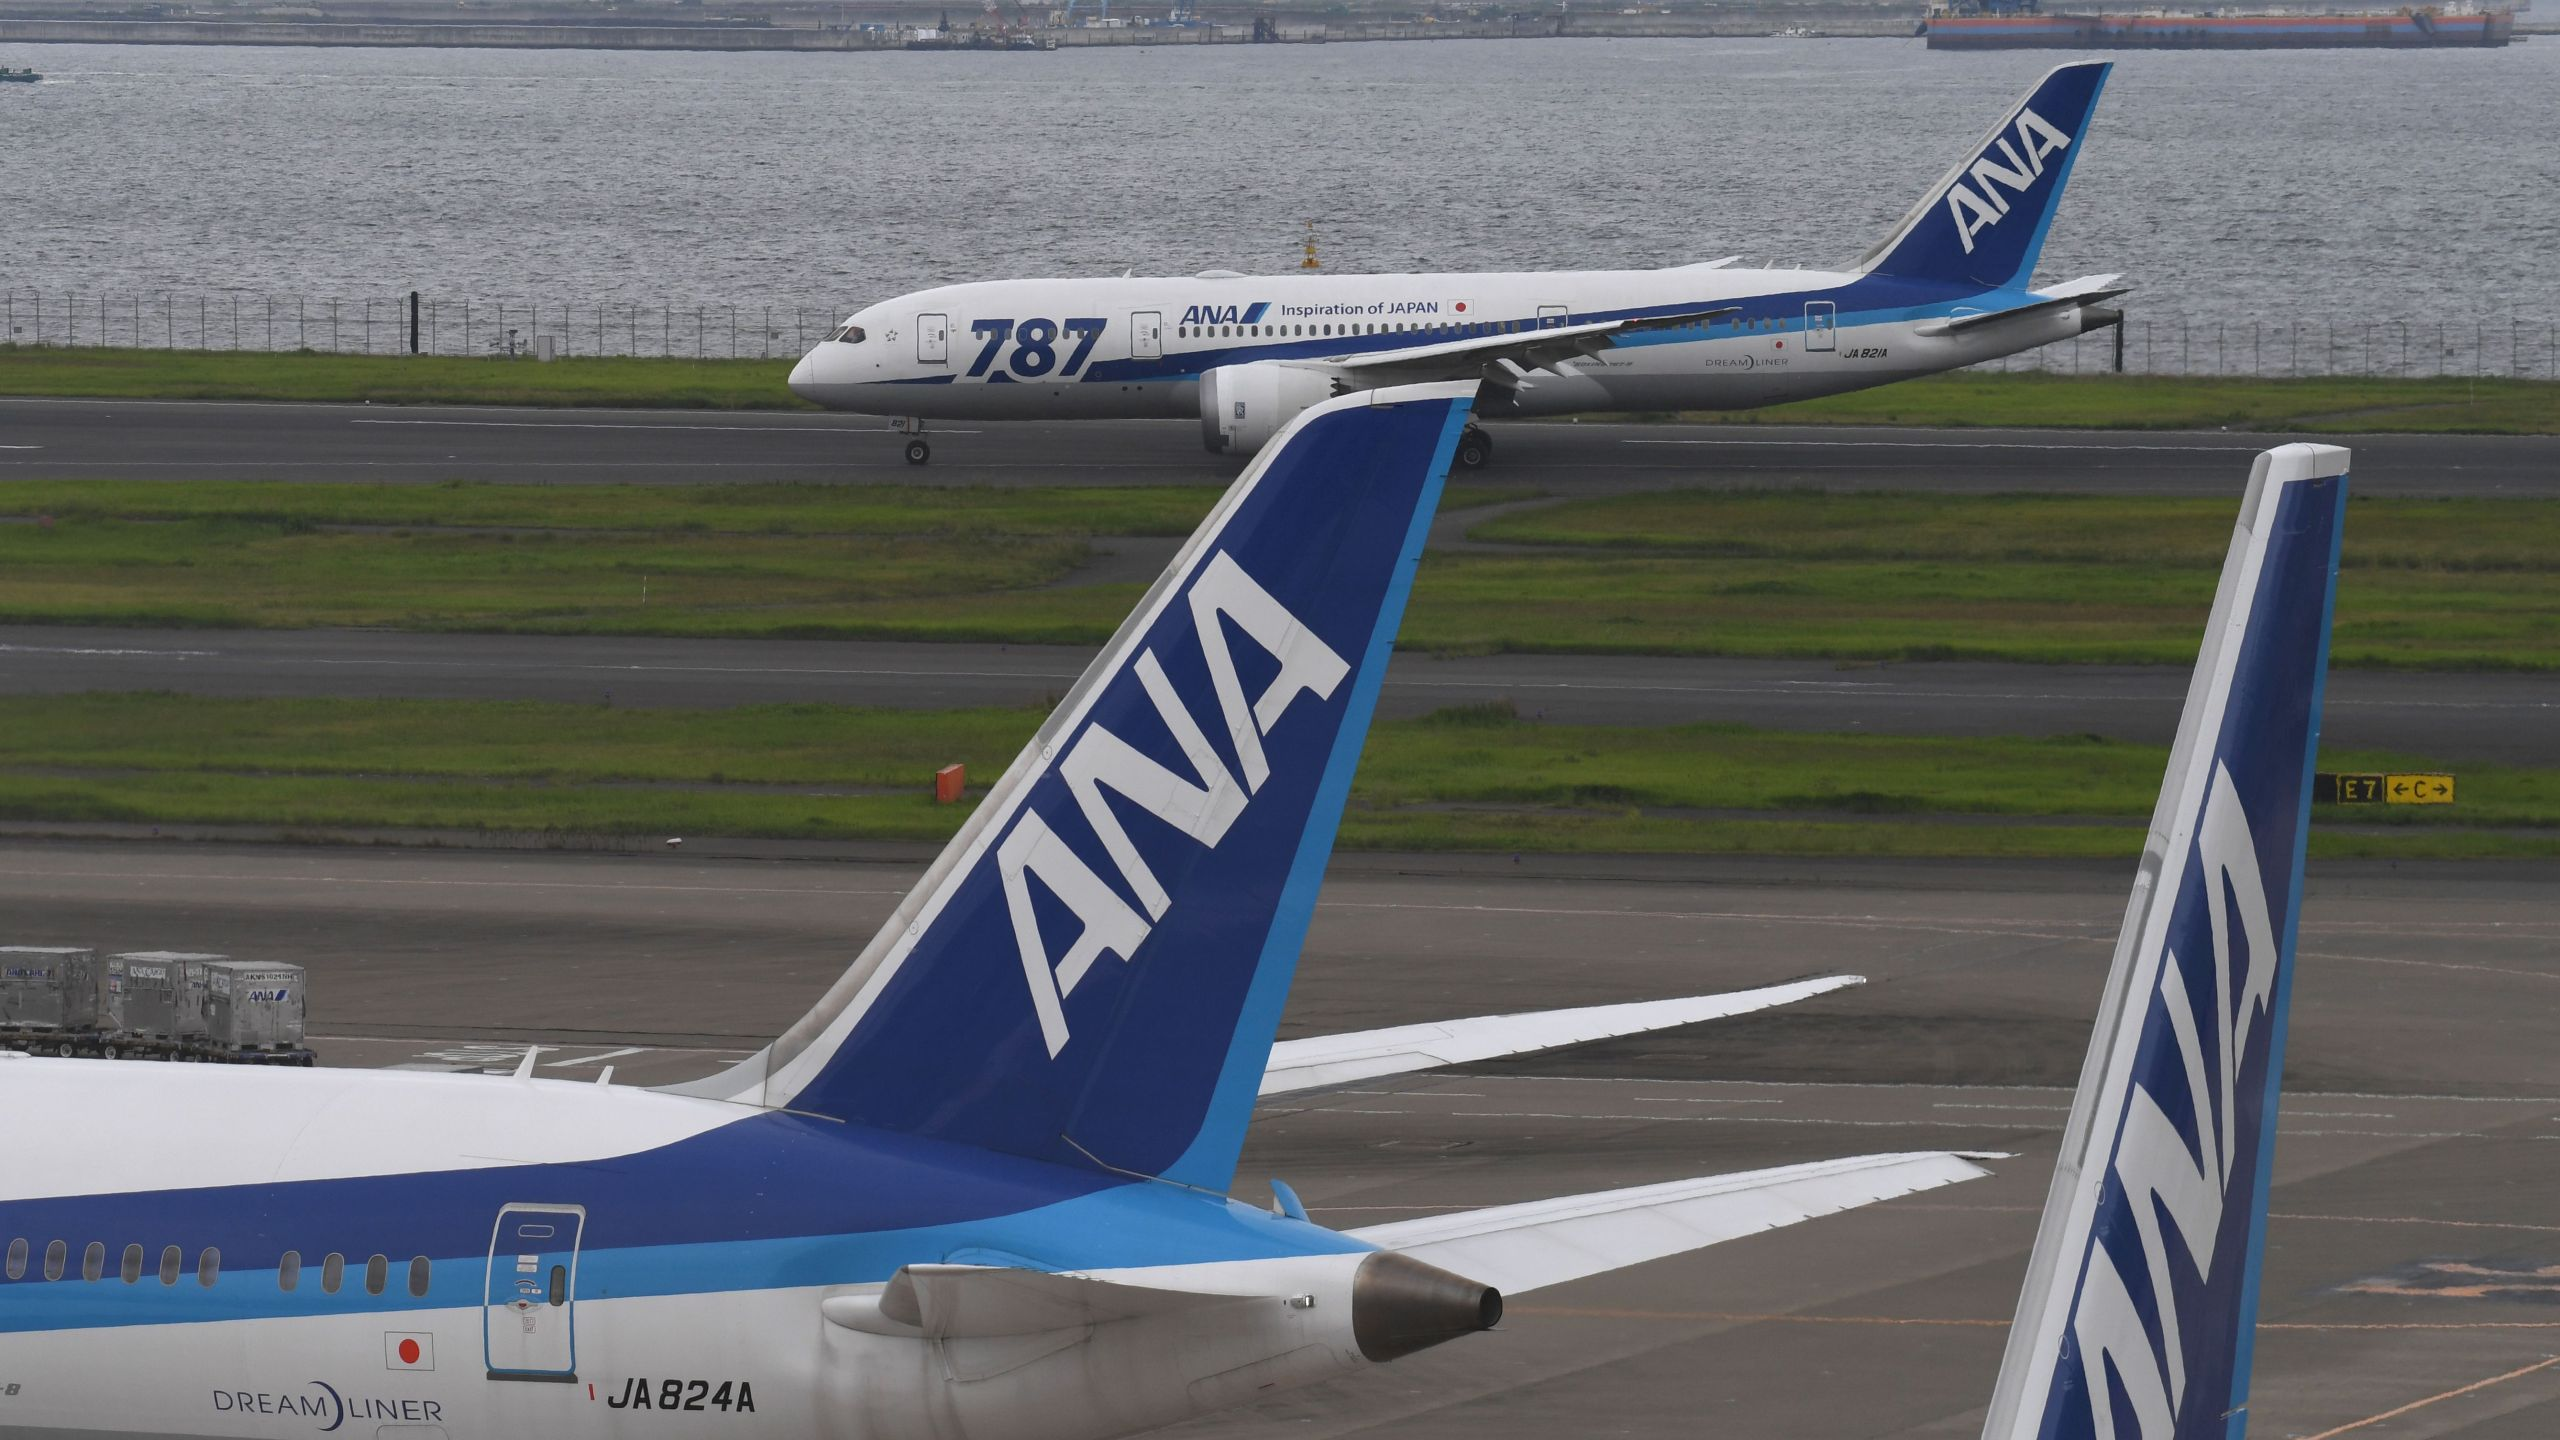 An All Nippon Airways (ANA) Boeing 787 is seen on the taxiway at Haneda international airport in Tokyo on Aug. 2, 2017. (Credit: Toshifumi Kitamura / AFP / Getty Images)